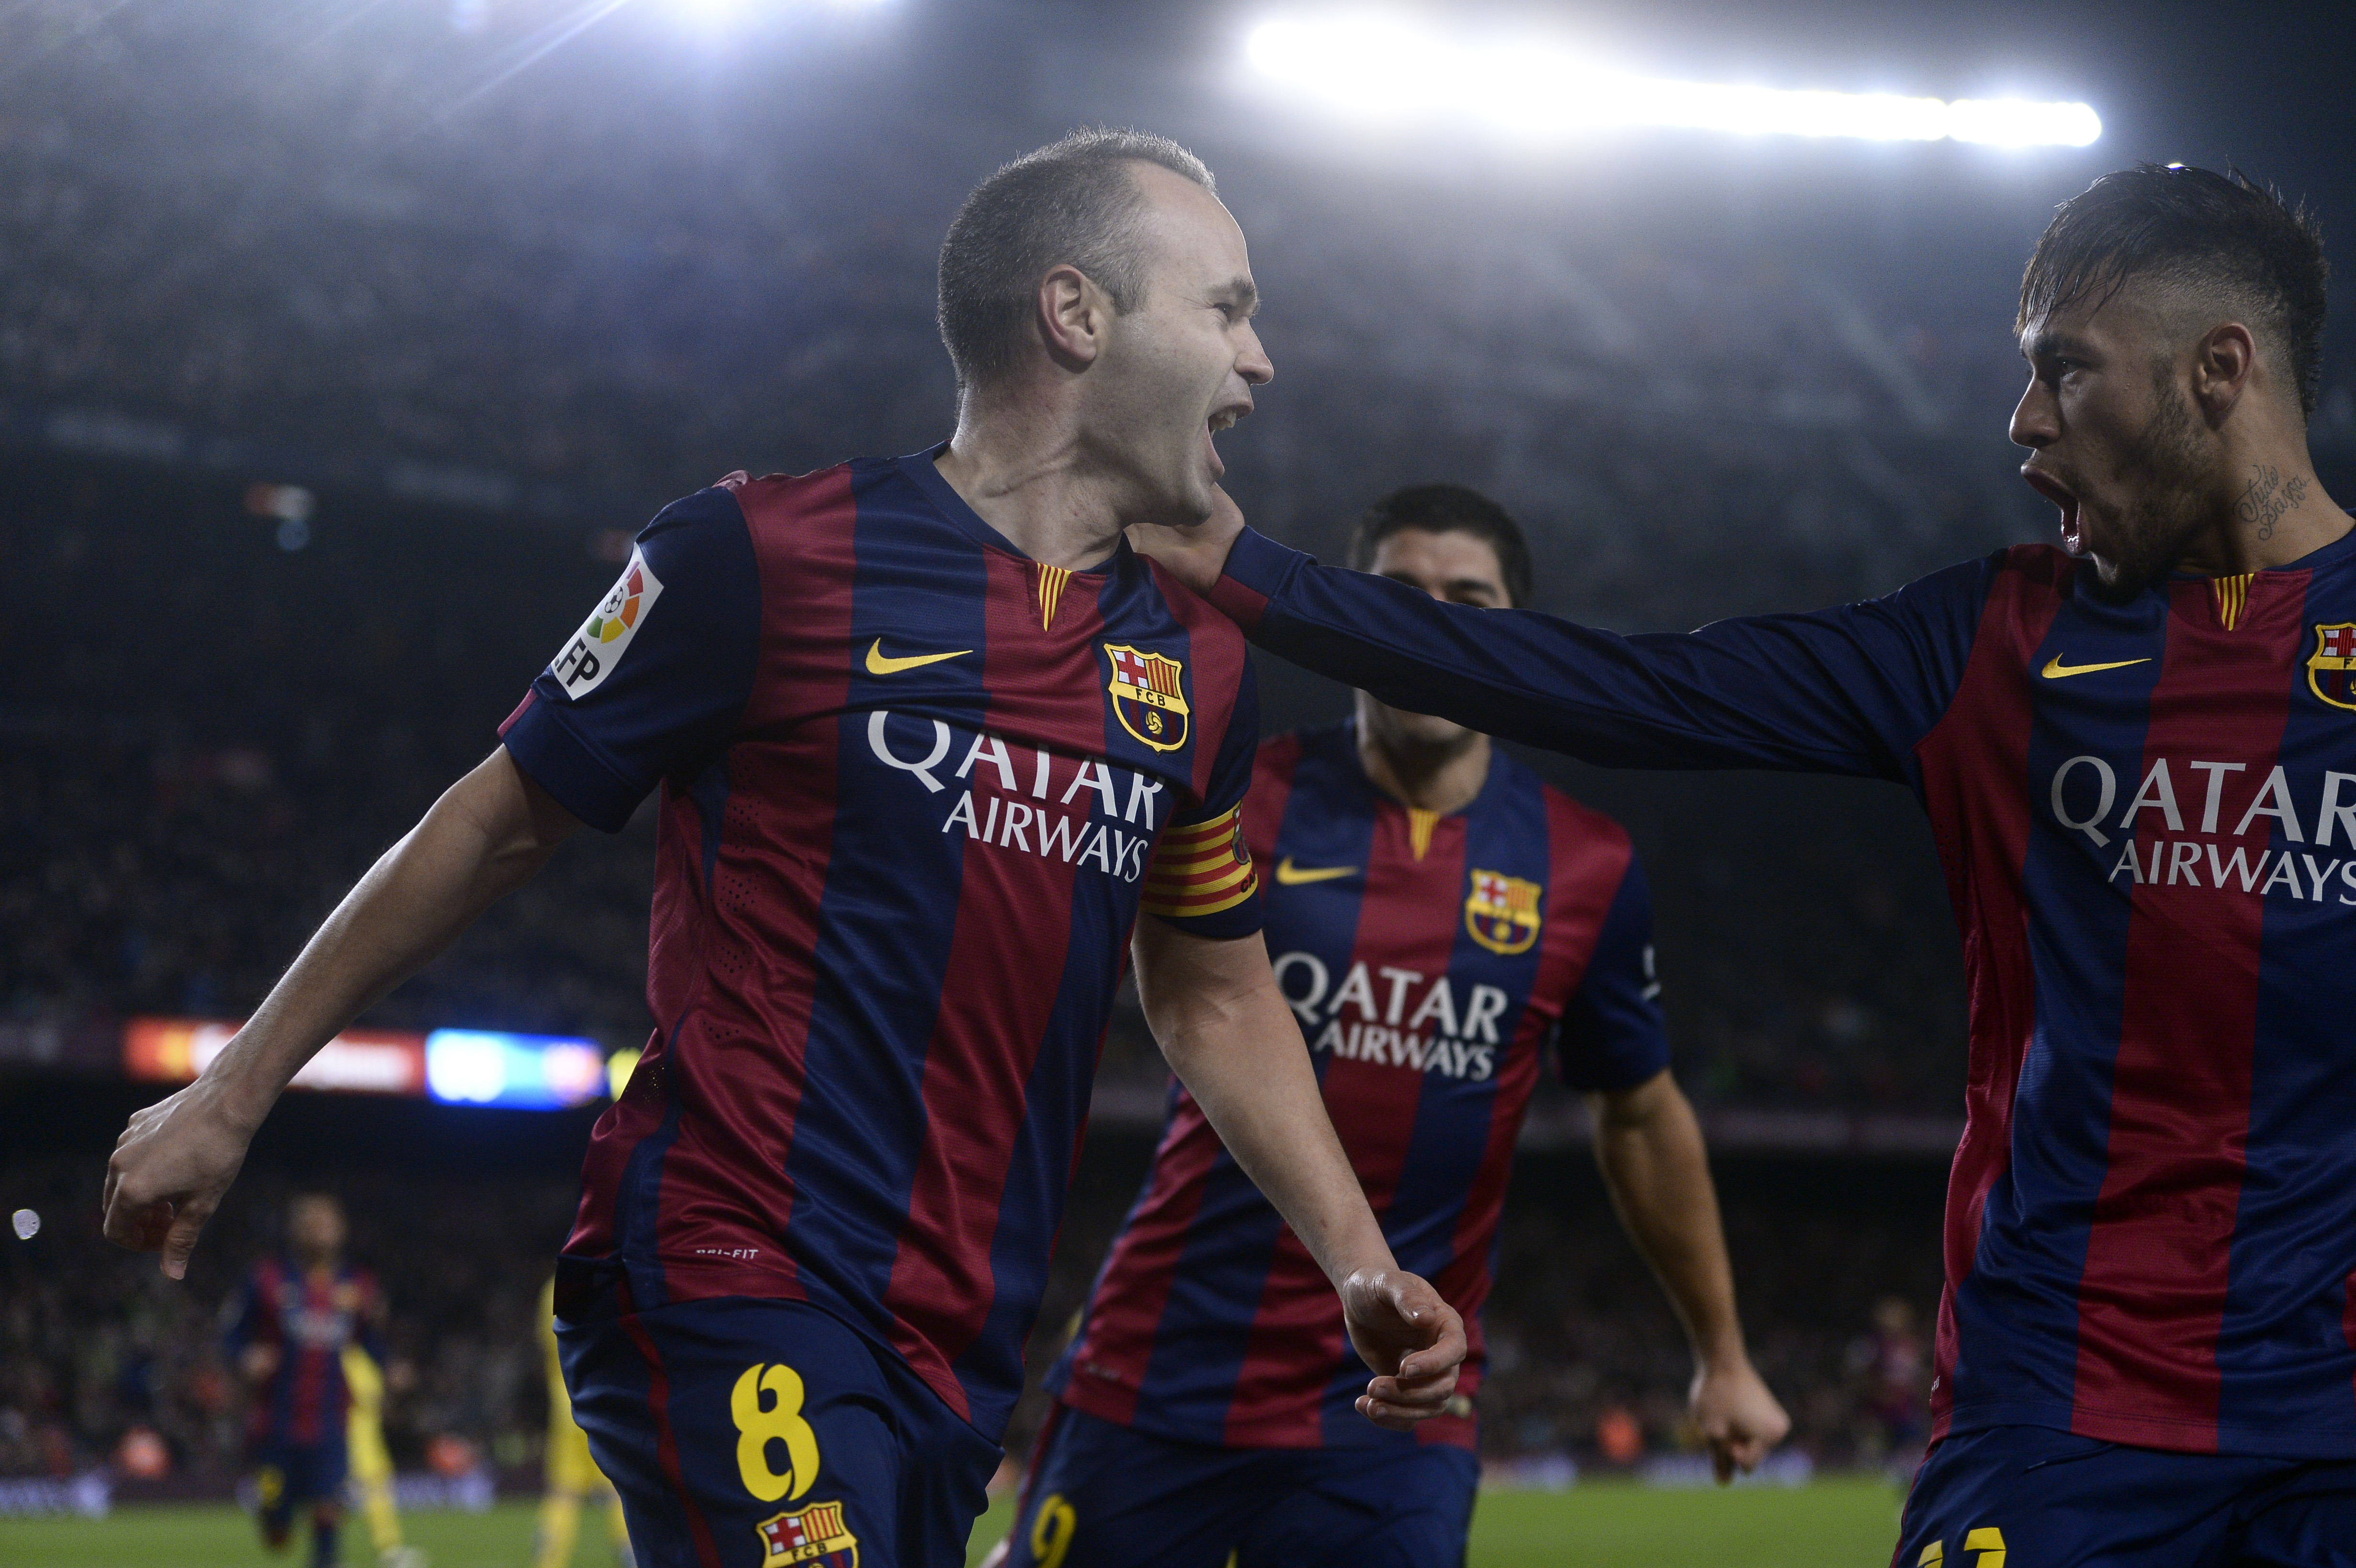 Would Iniesta leave La Liga for the Premier League? Image: PA Images